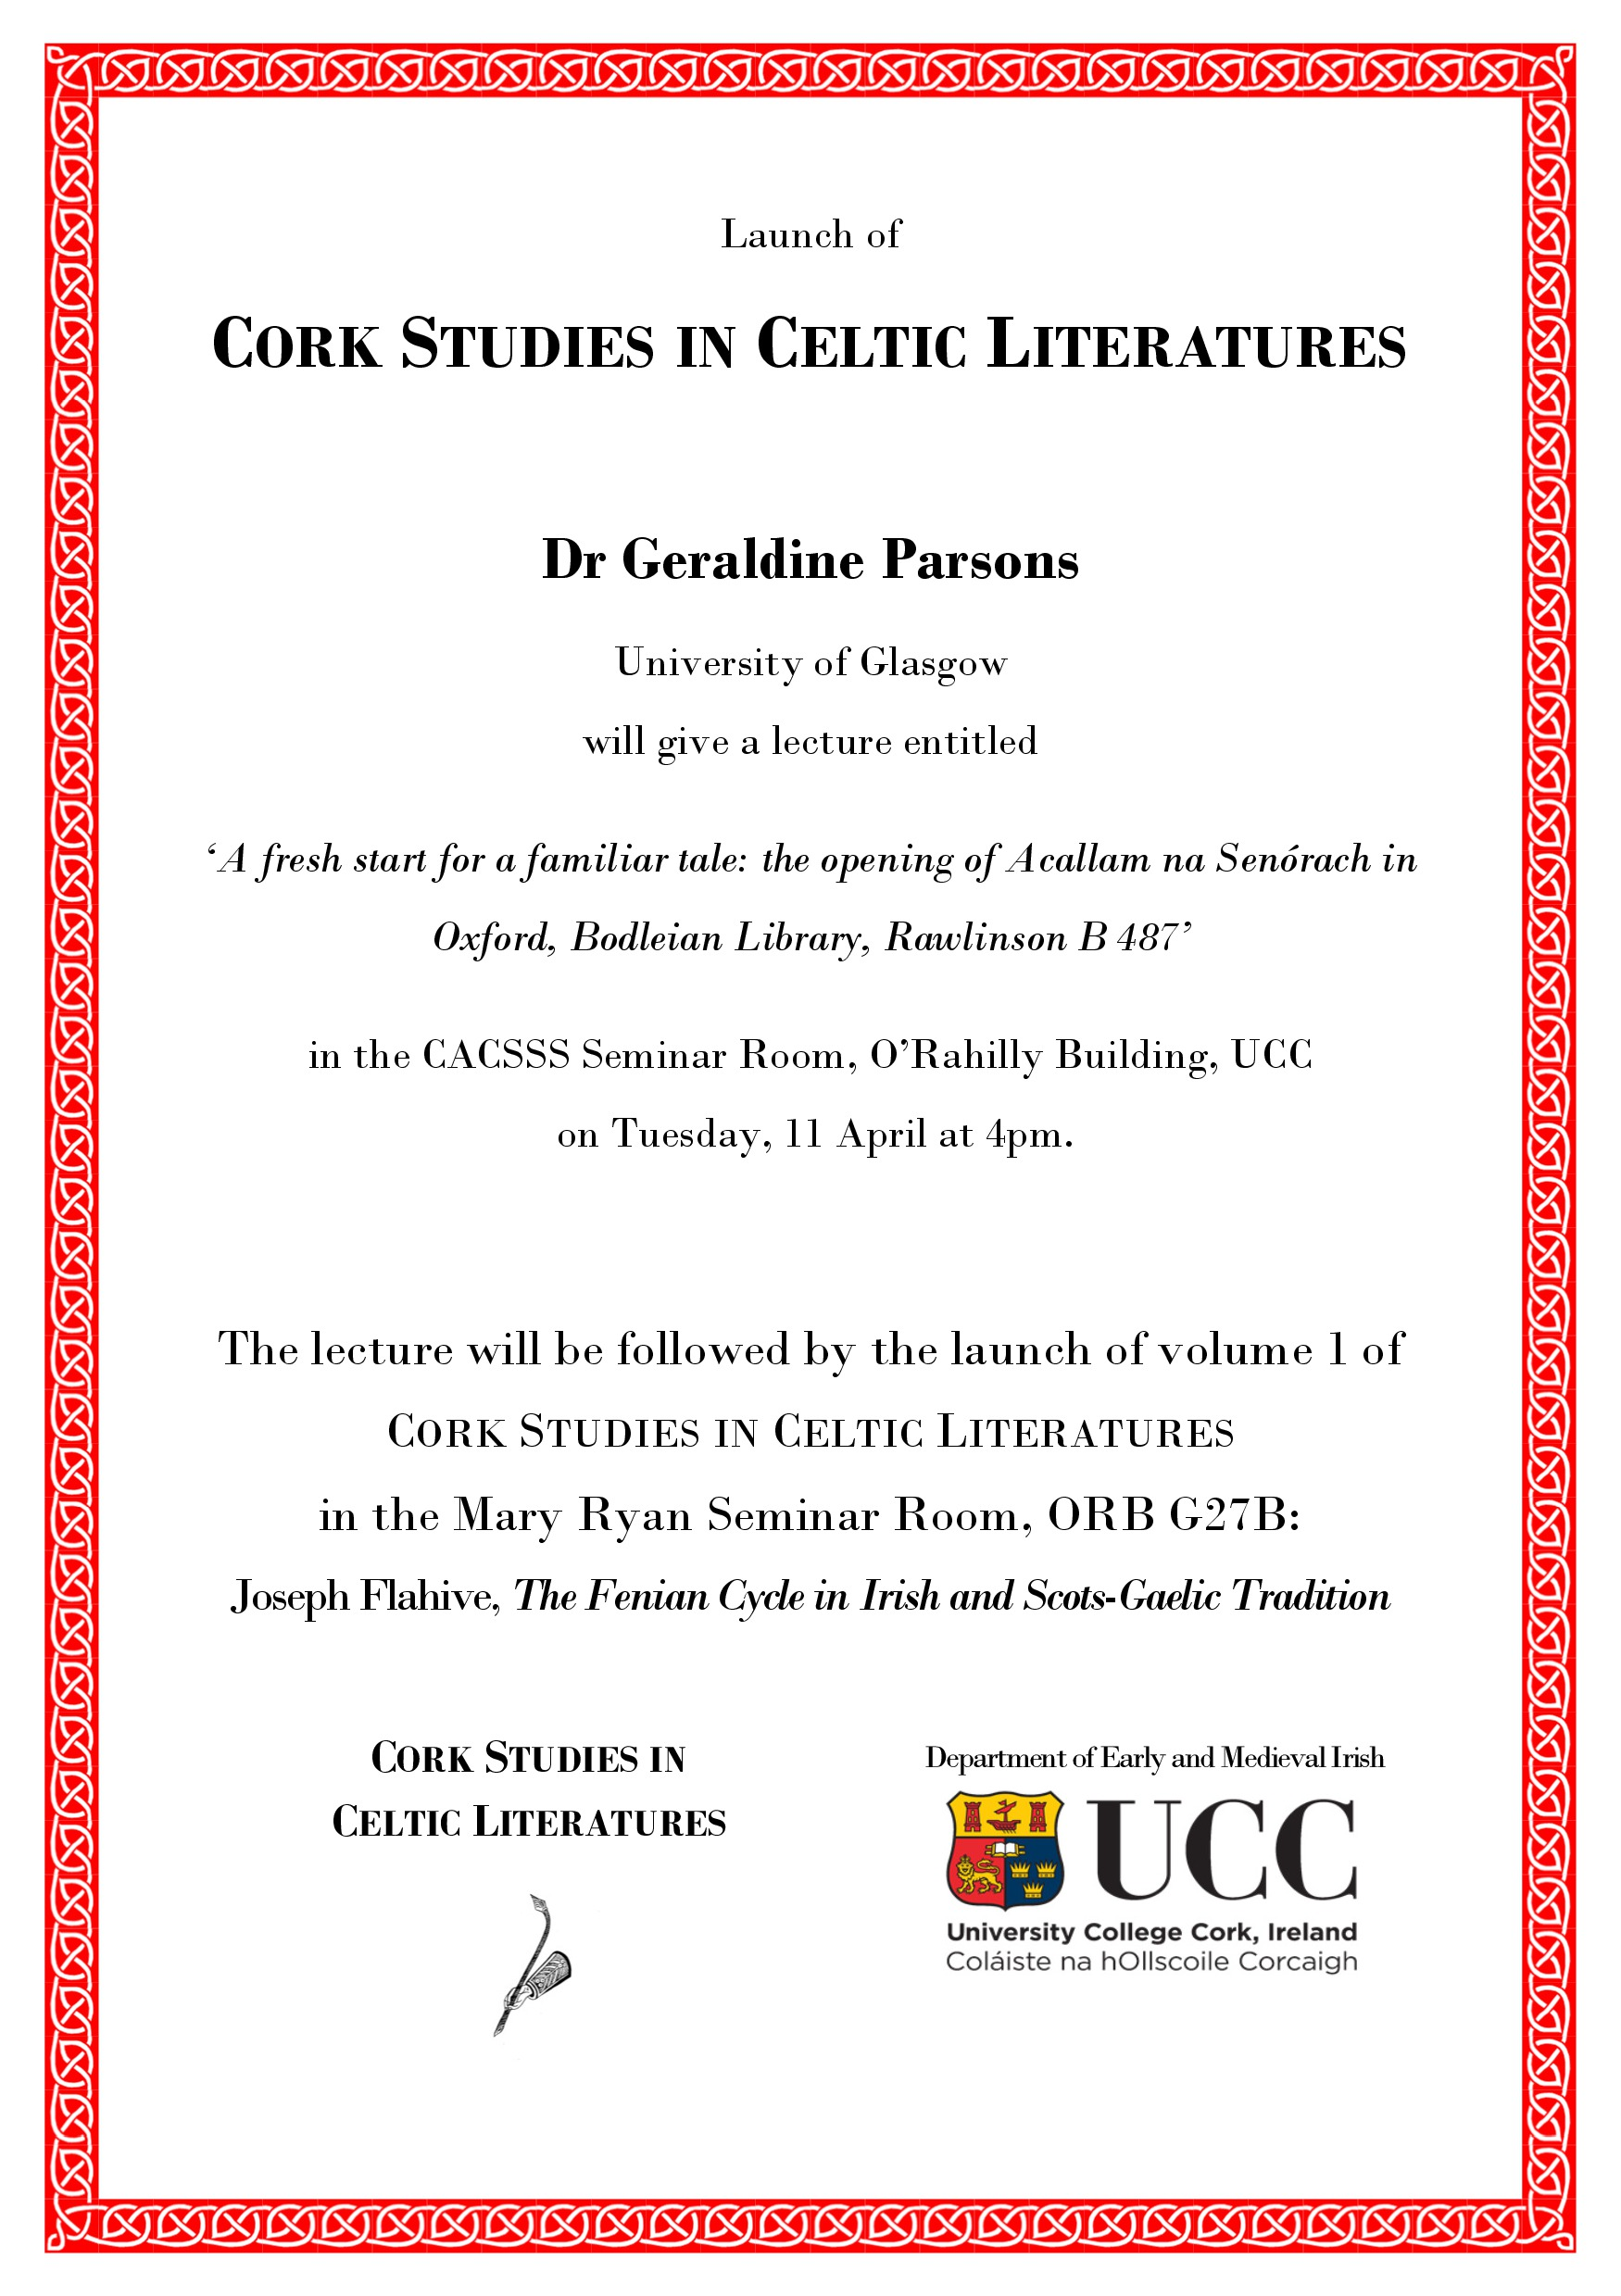 Cork Studies in Celtic Literatures